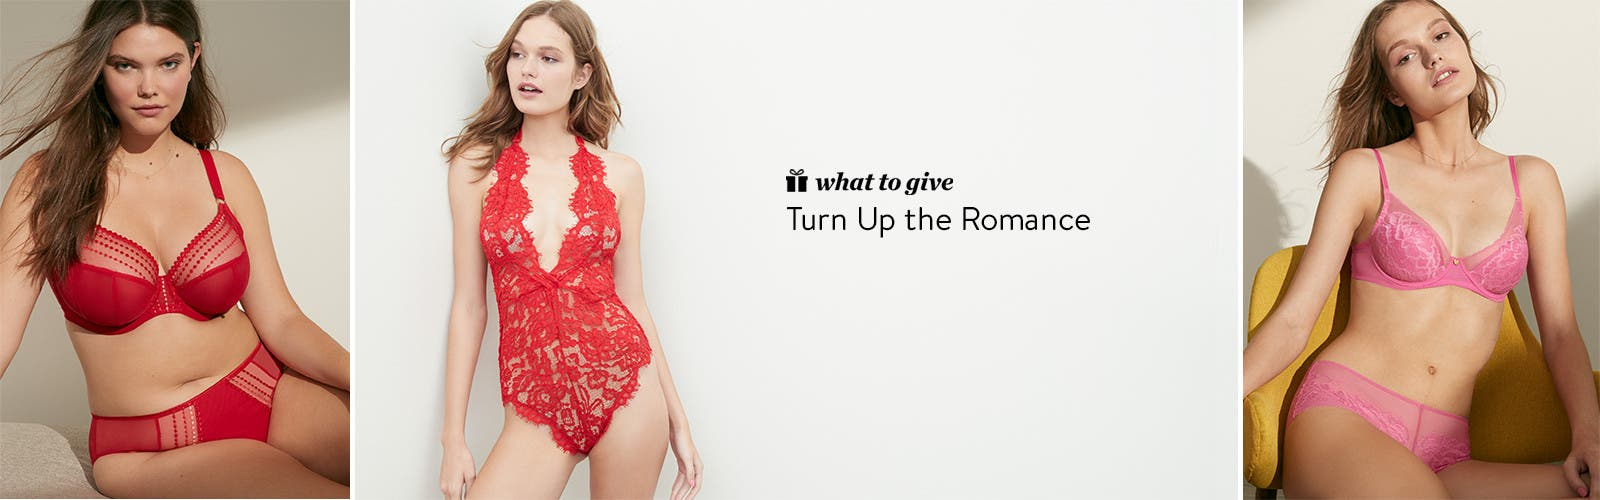 turn up the romance valentines day lingerie gifts - Lingerie For Valentines